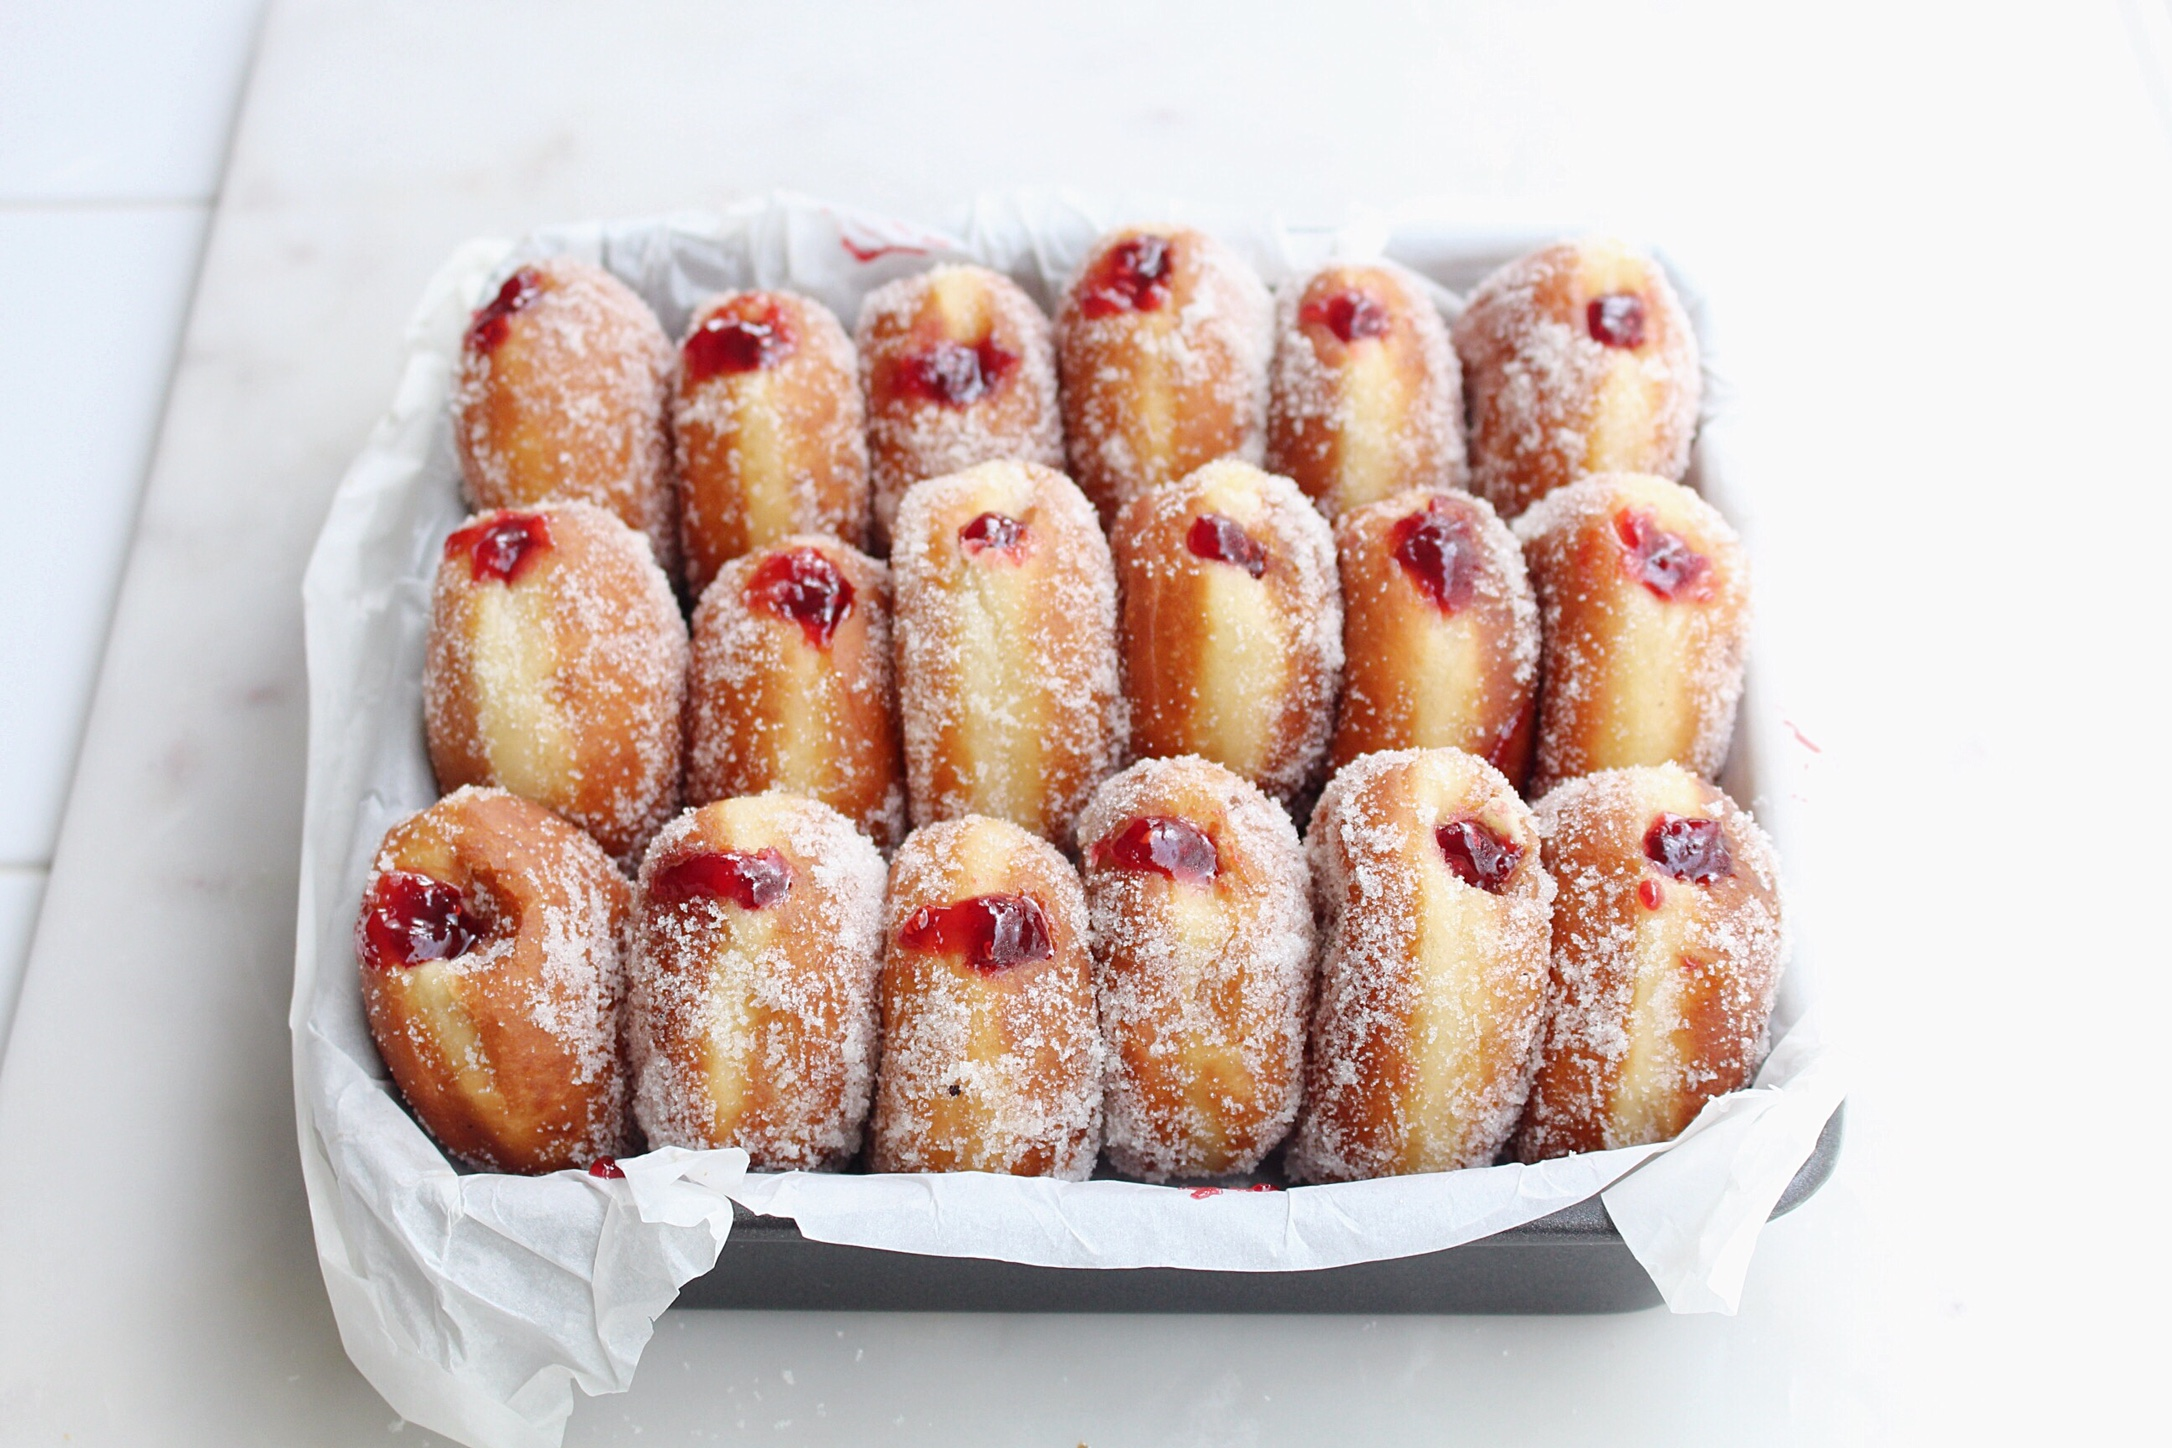 via  thesweetandsimplekitchen.com/raspberry-jam-filled-donuts-with-vanilla-sugar/